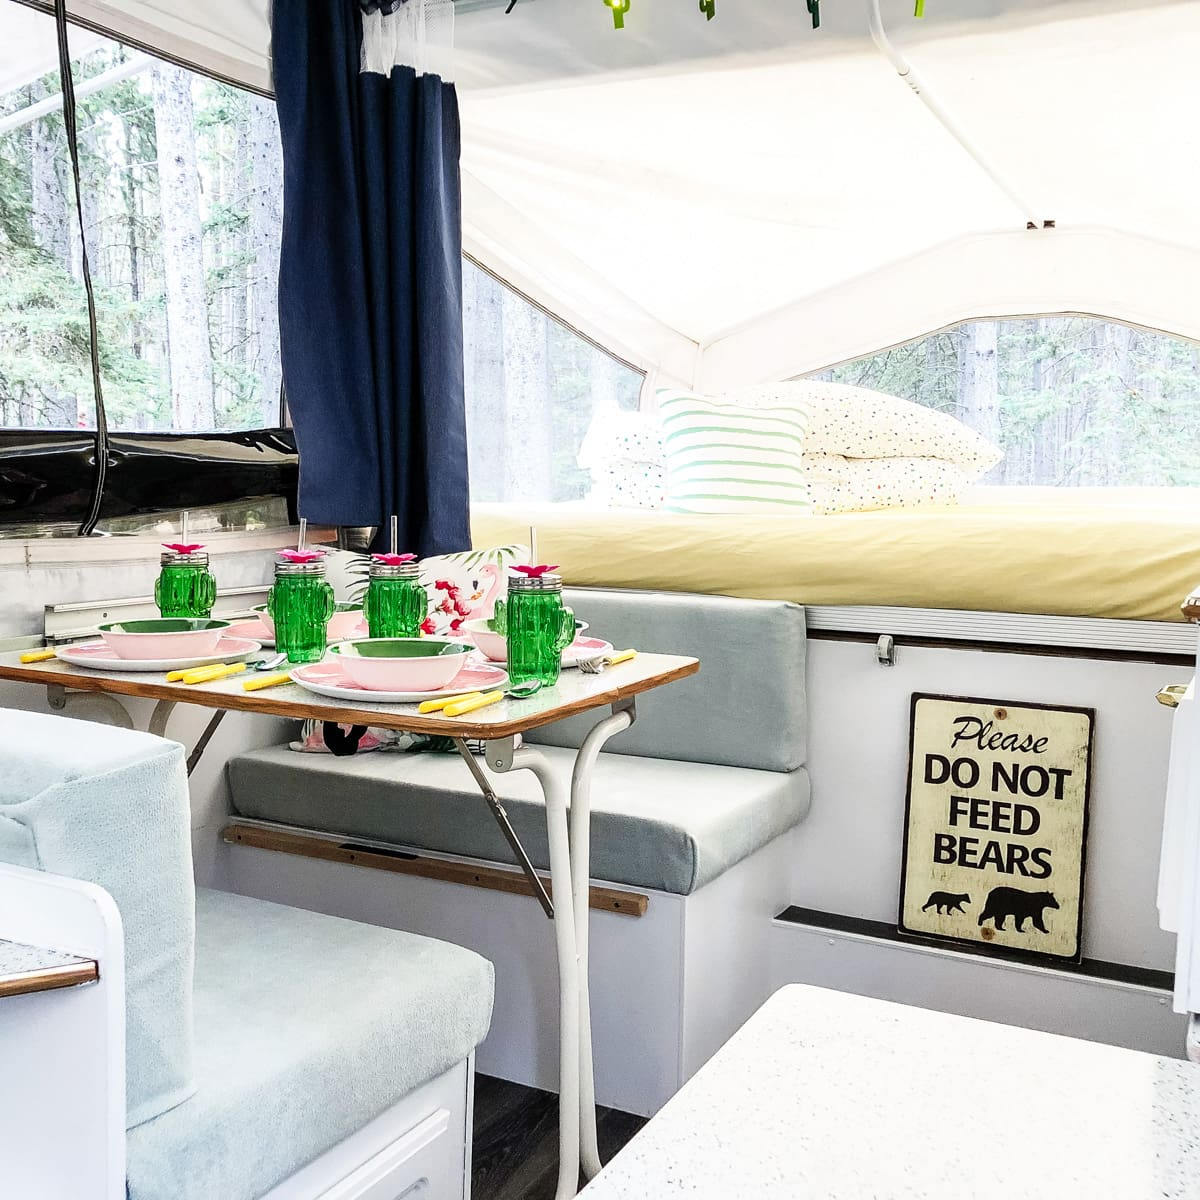 How to Reupholster Camper Cushions: A No-Sew Method